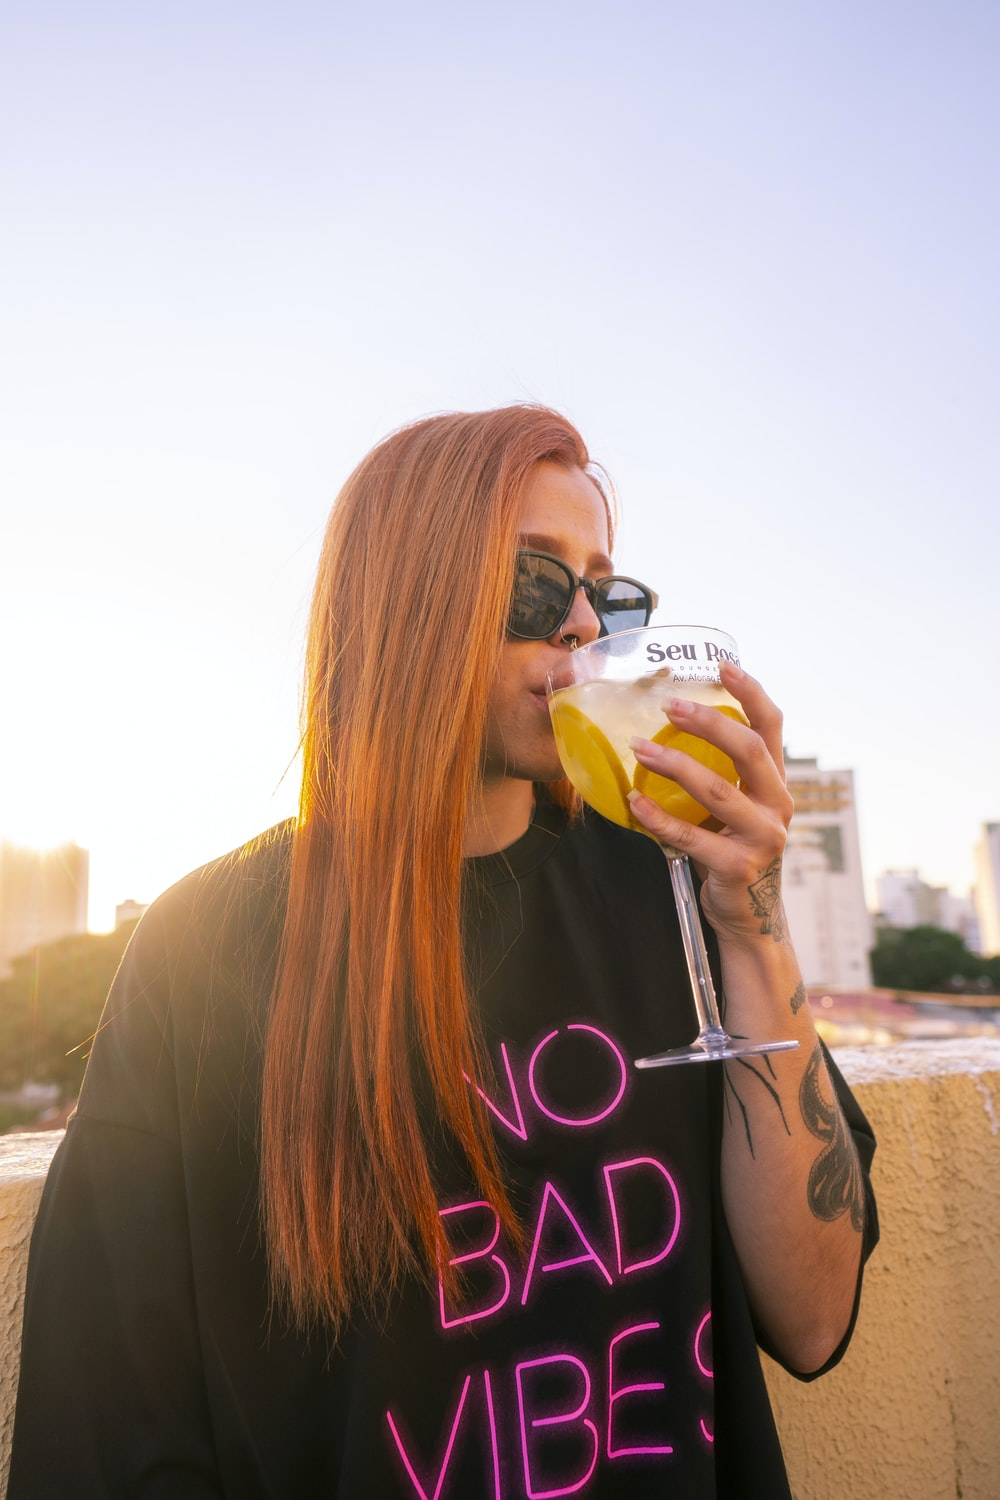 woman in black long sleeve shirt drinking from clear drinking glass during daytime